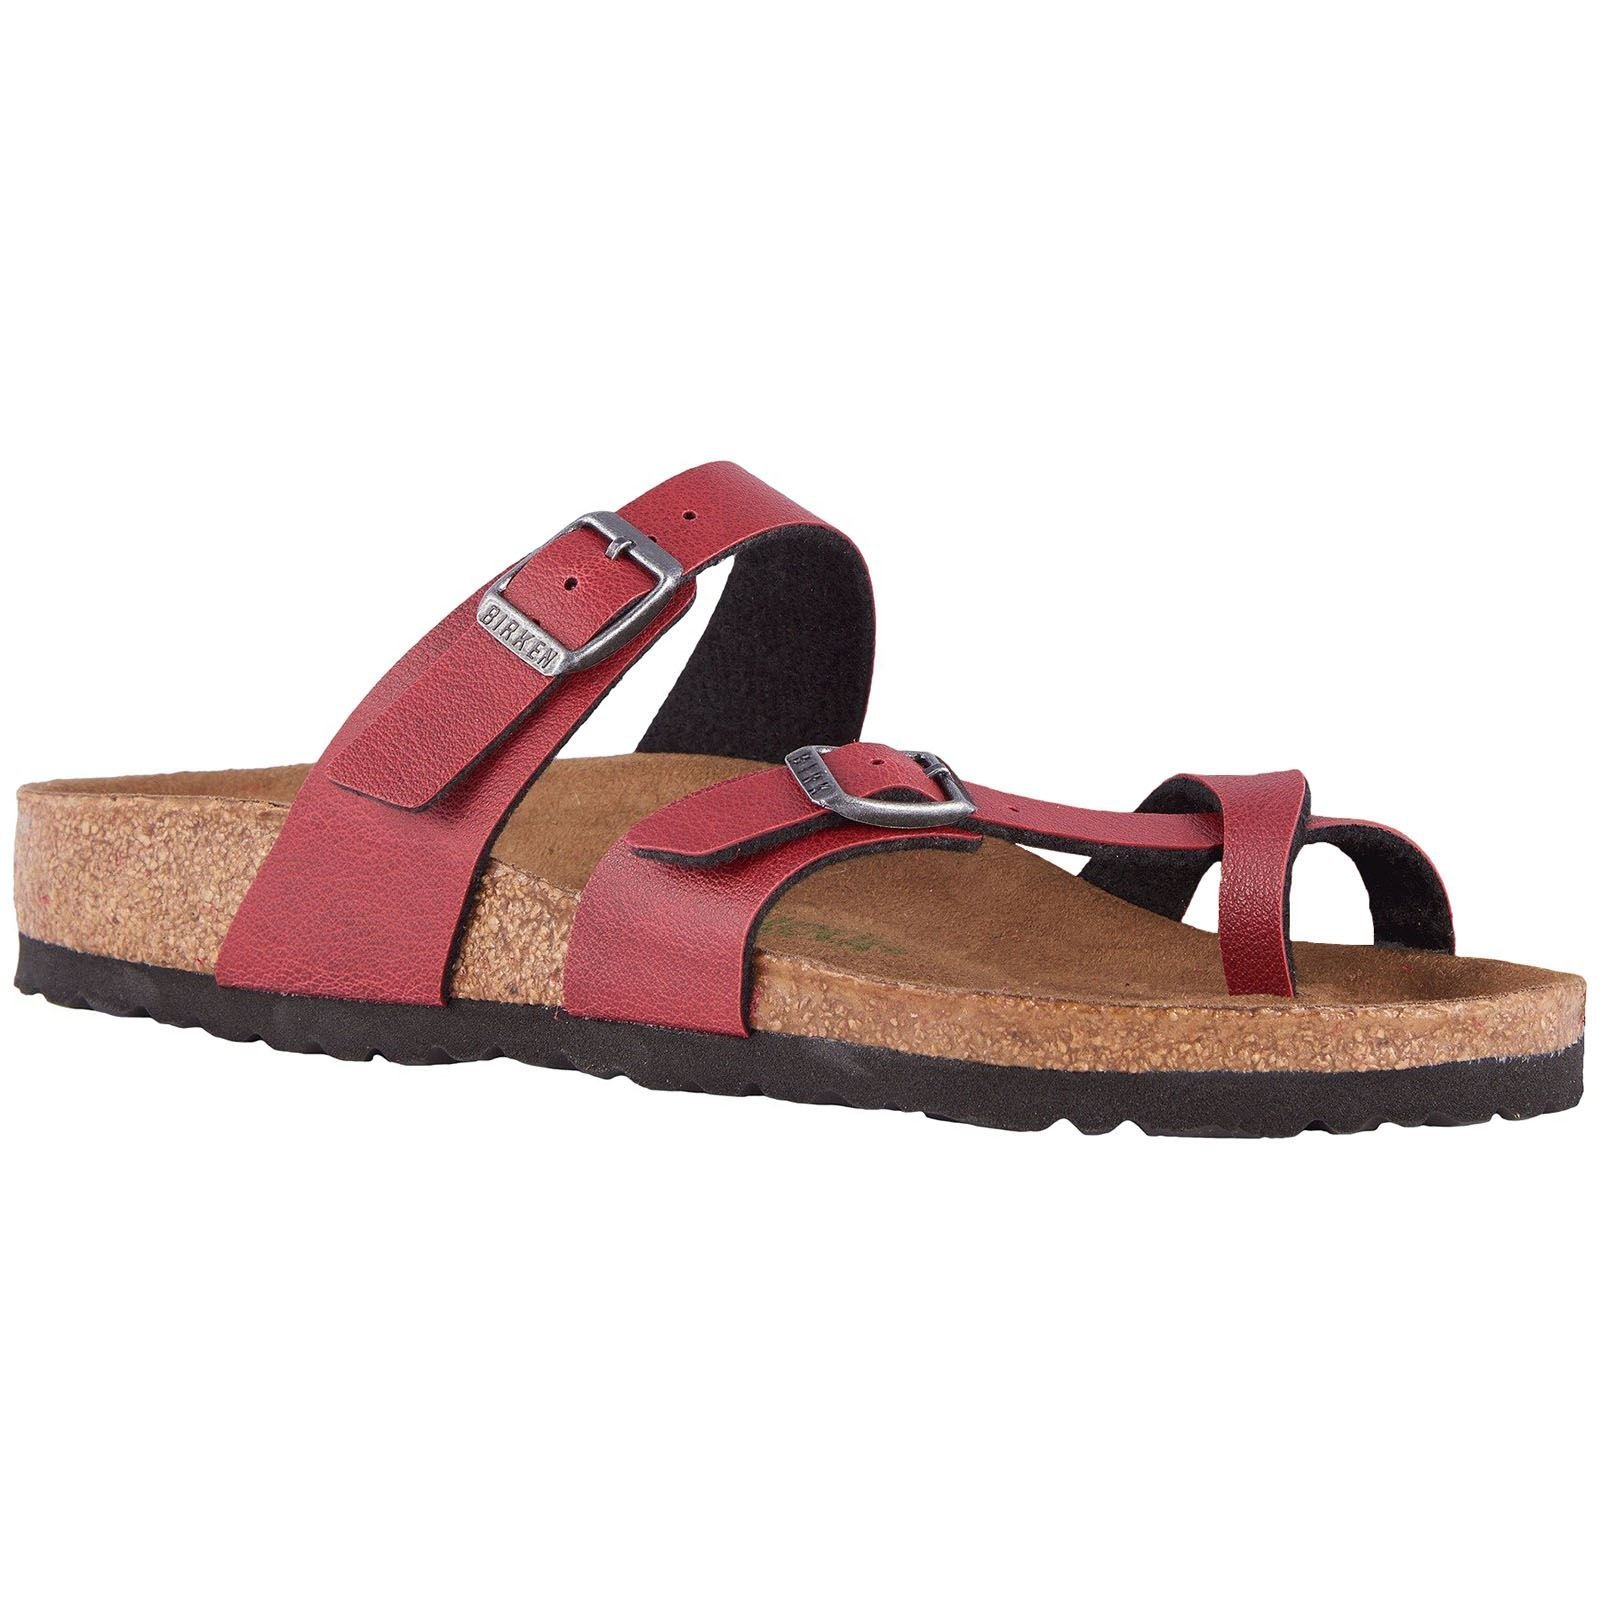 Birkenstock Women's Vegan Mayari Bordeaux Pull Up Birko-Flor Sandal 38 (US Women's 7-7.5)